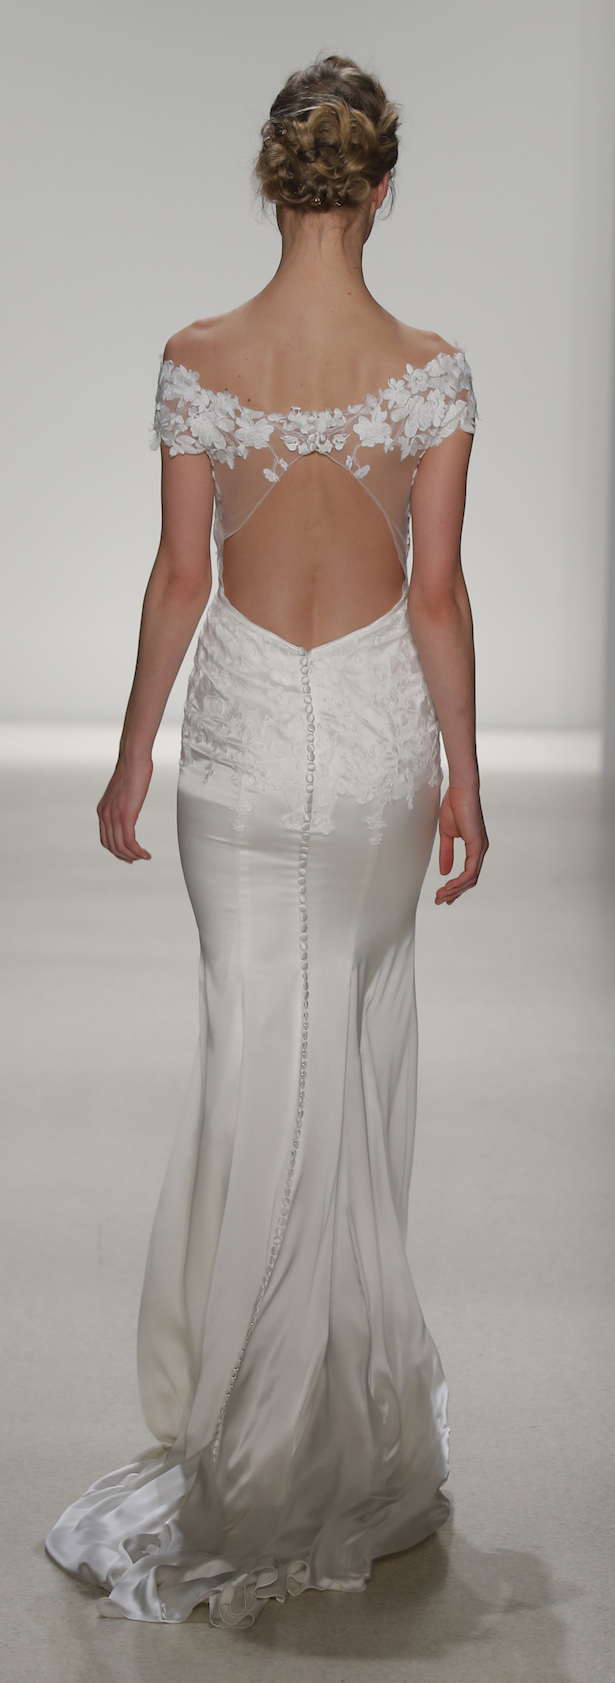 Wedding Dress by Kelly Faetanini Spring 2018 EMILIA